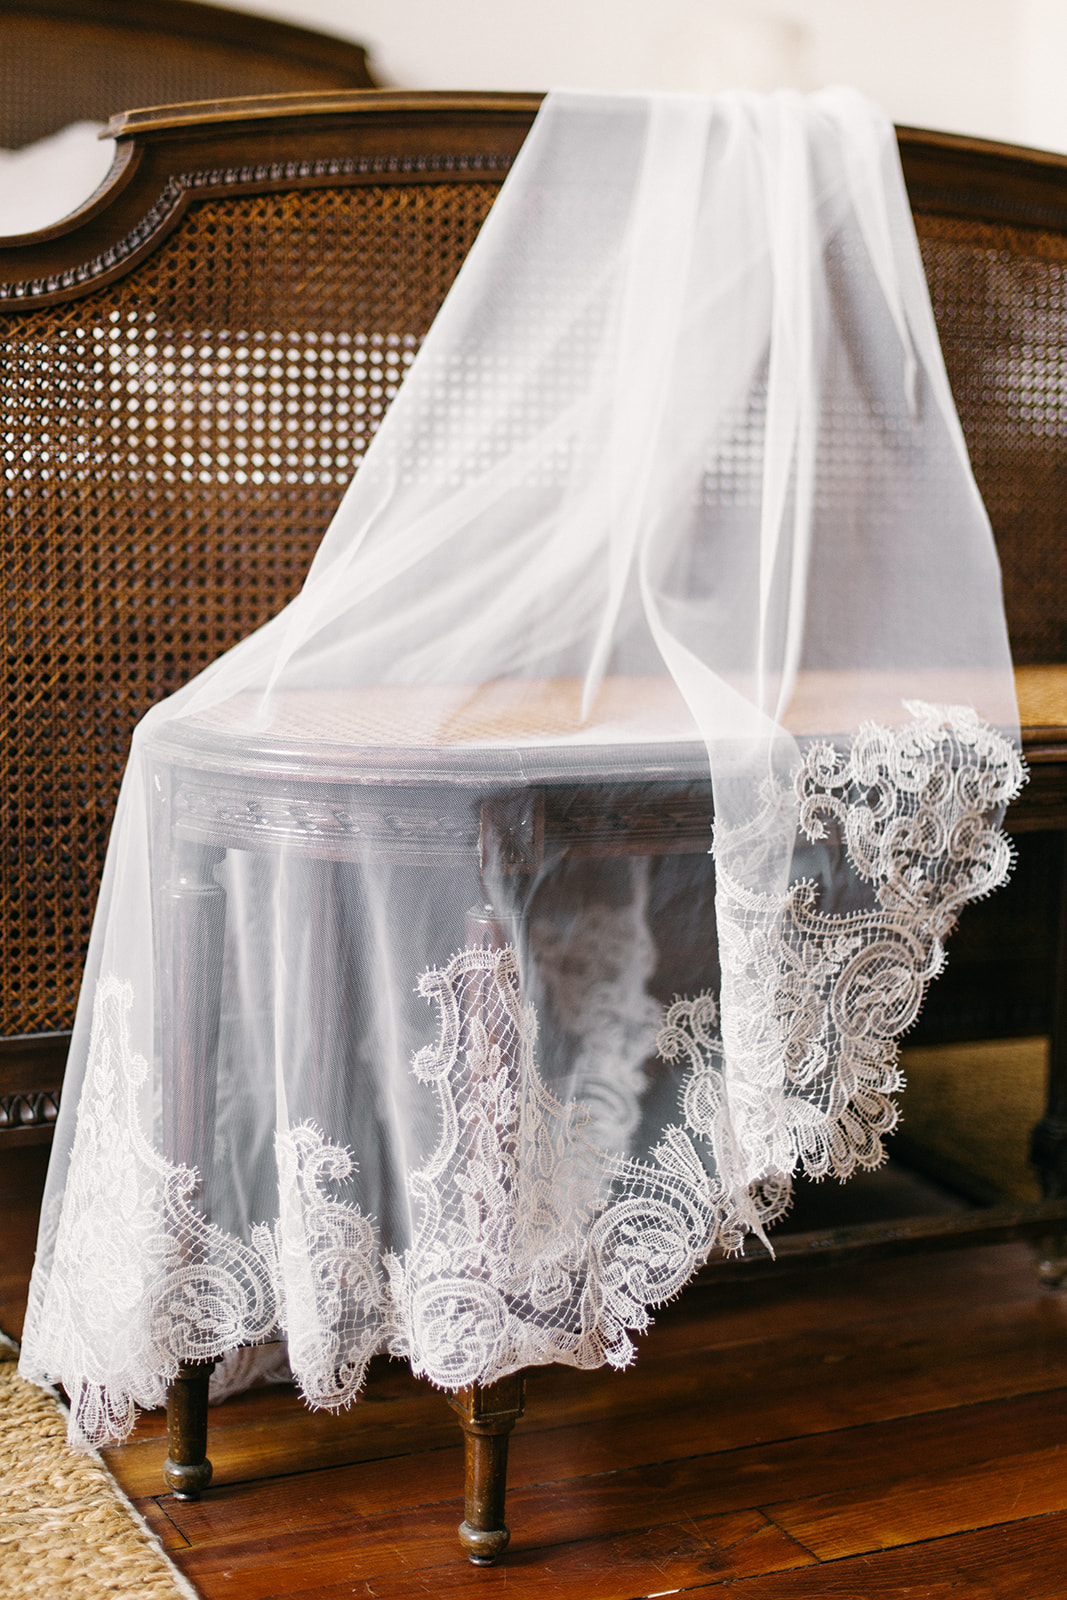 French Chateau Wedding, Events by Reagan, France Wedding, Destination Wedding Planner, Veil